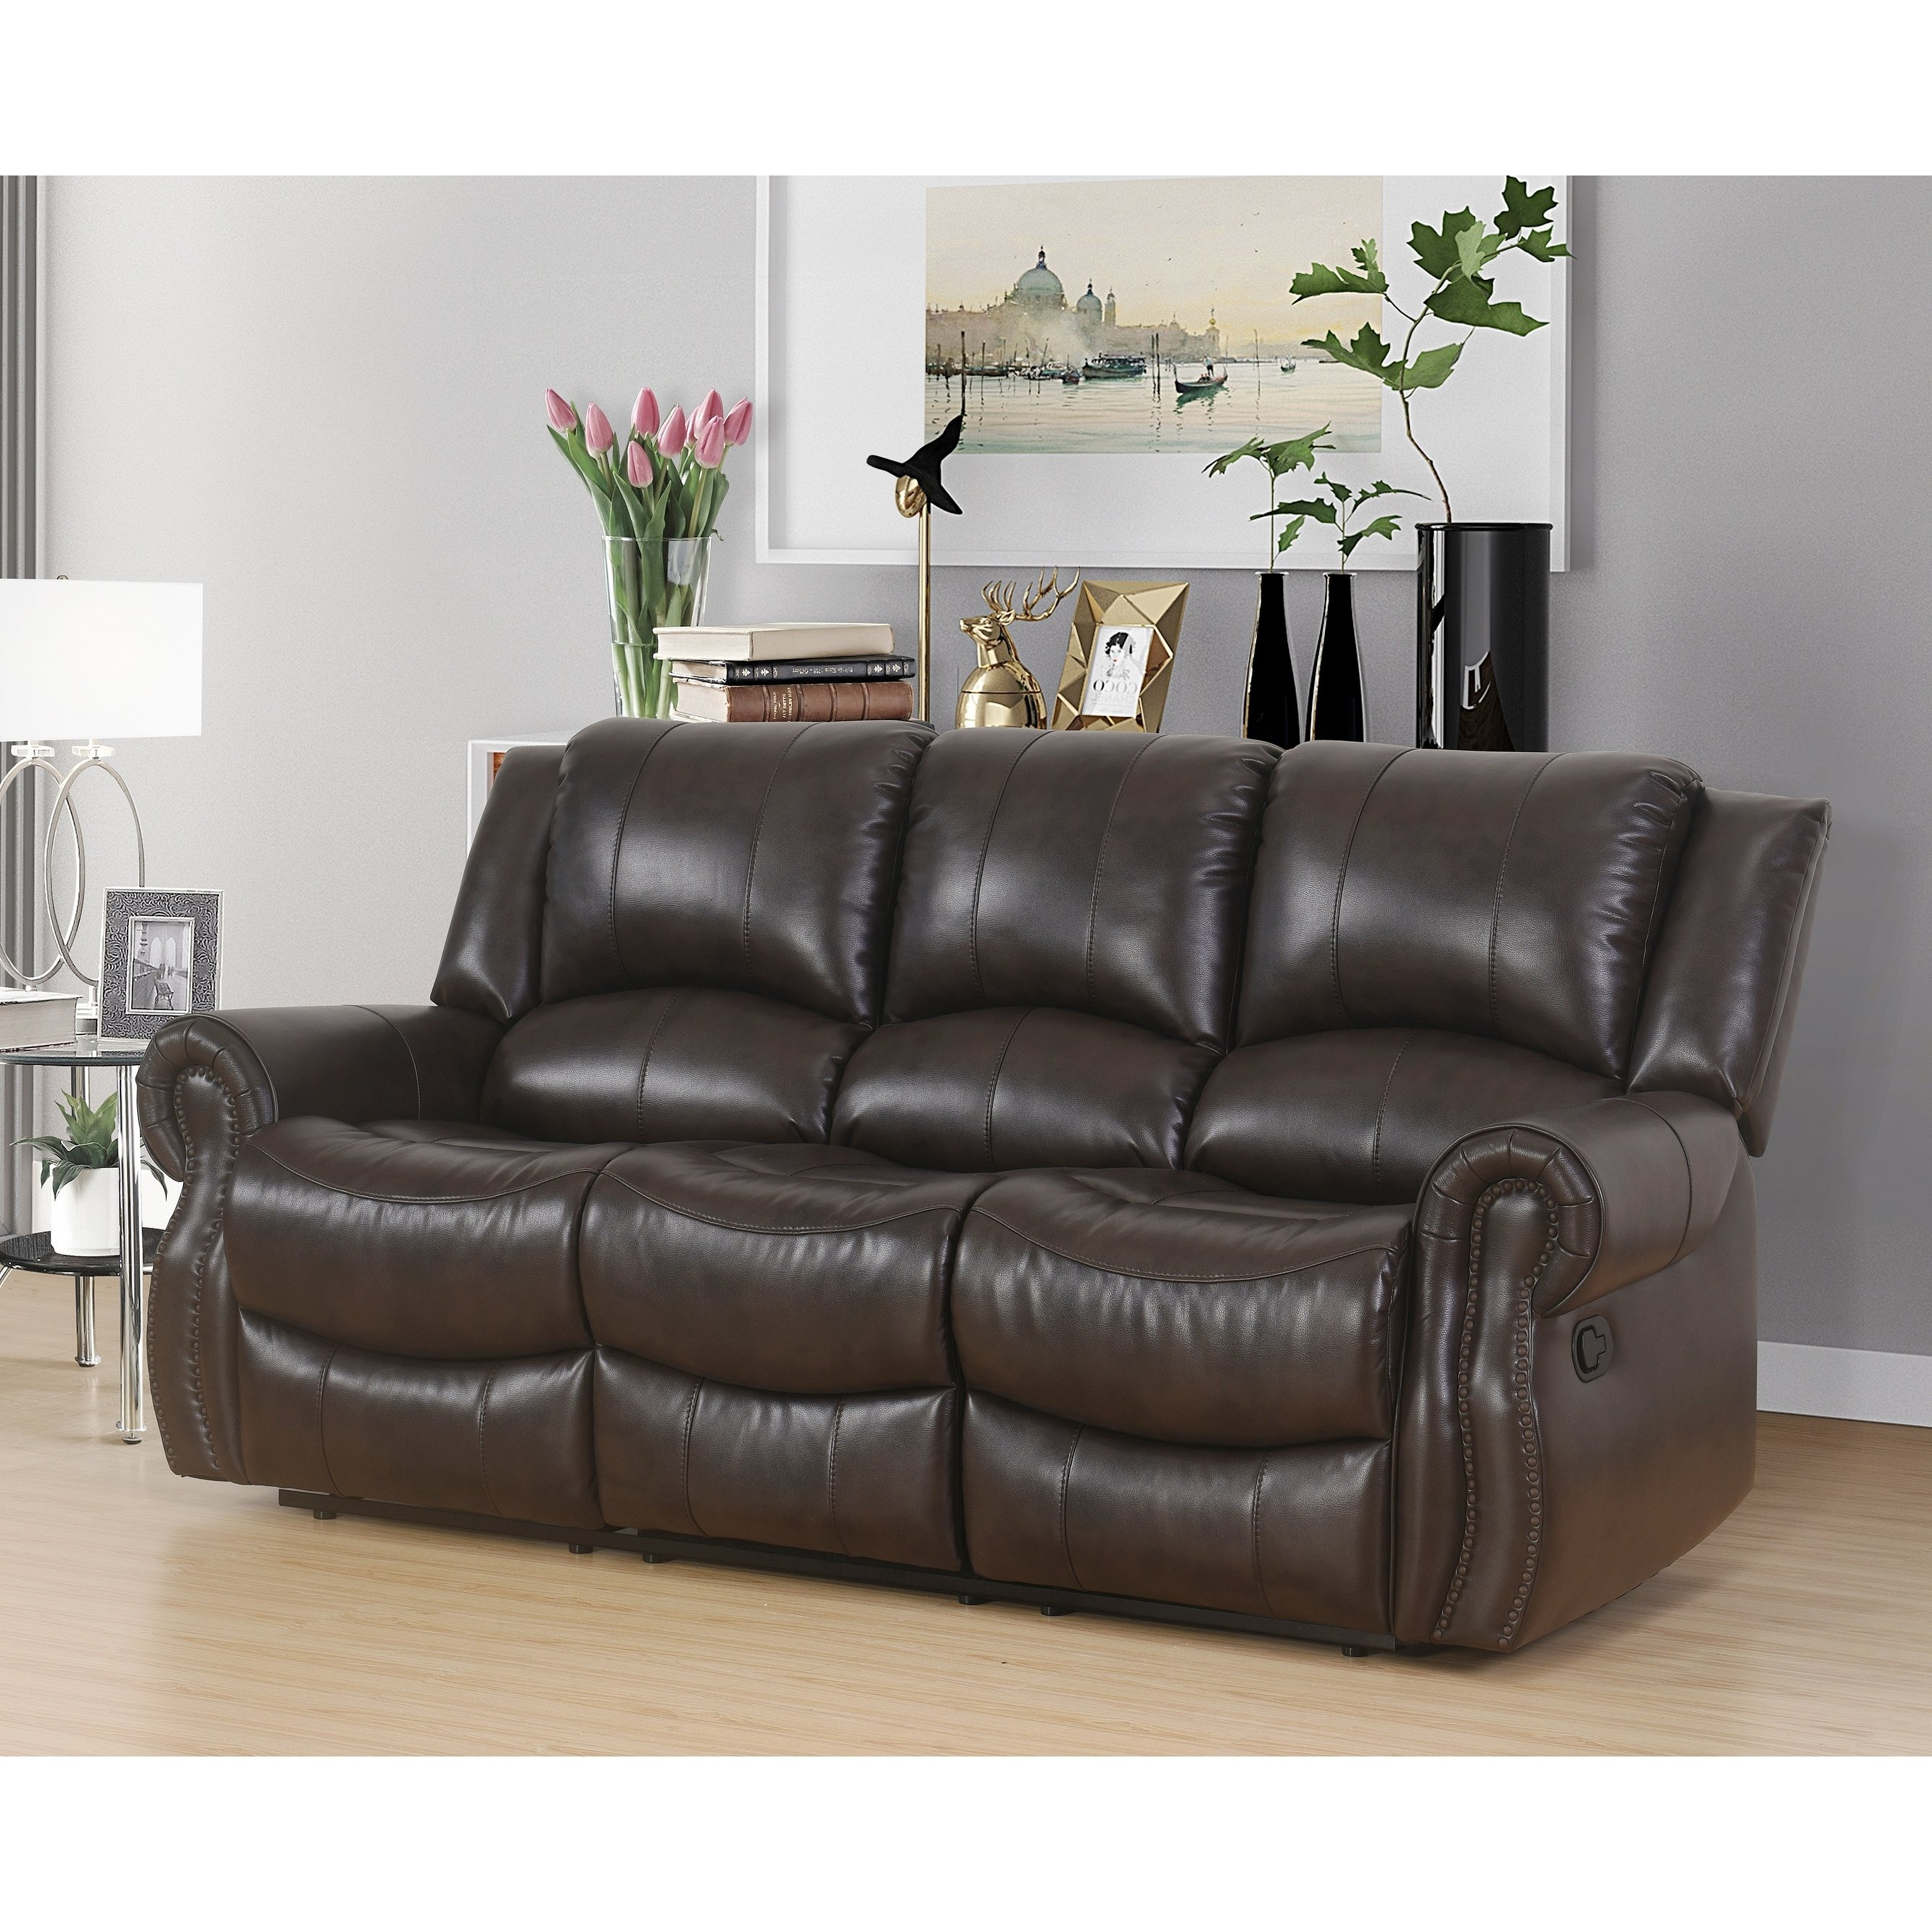 Shop Abson Bradford Brown 3 Piece Faux Leather Living Room Set in Faux Leather Living Room Set